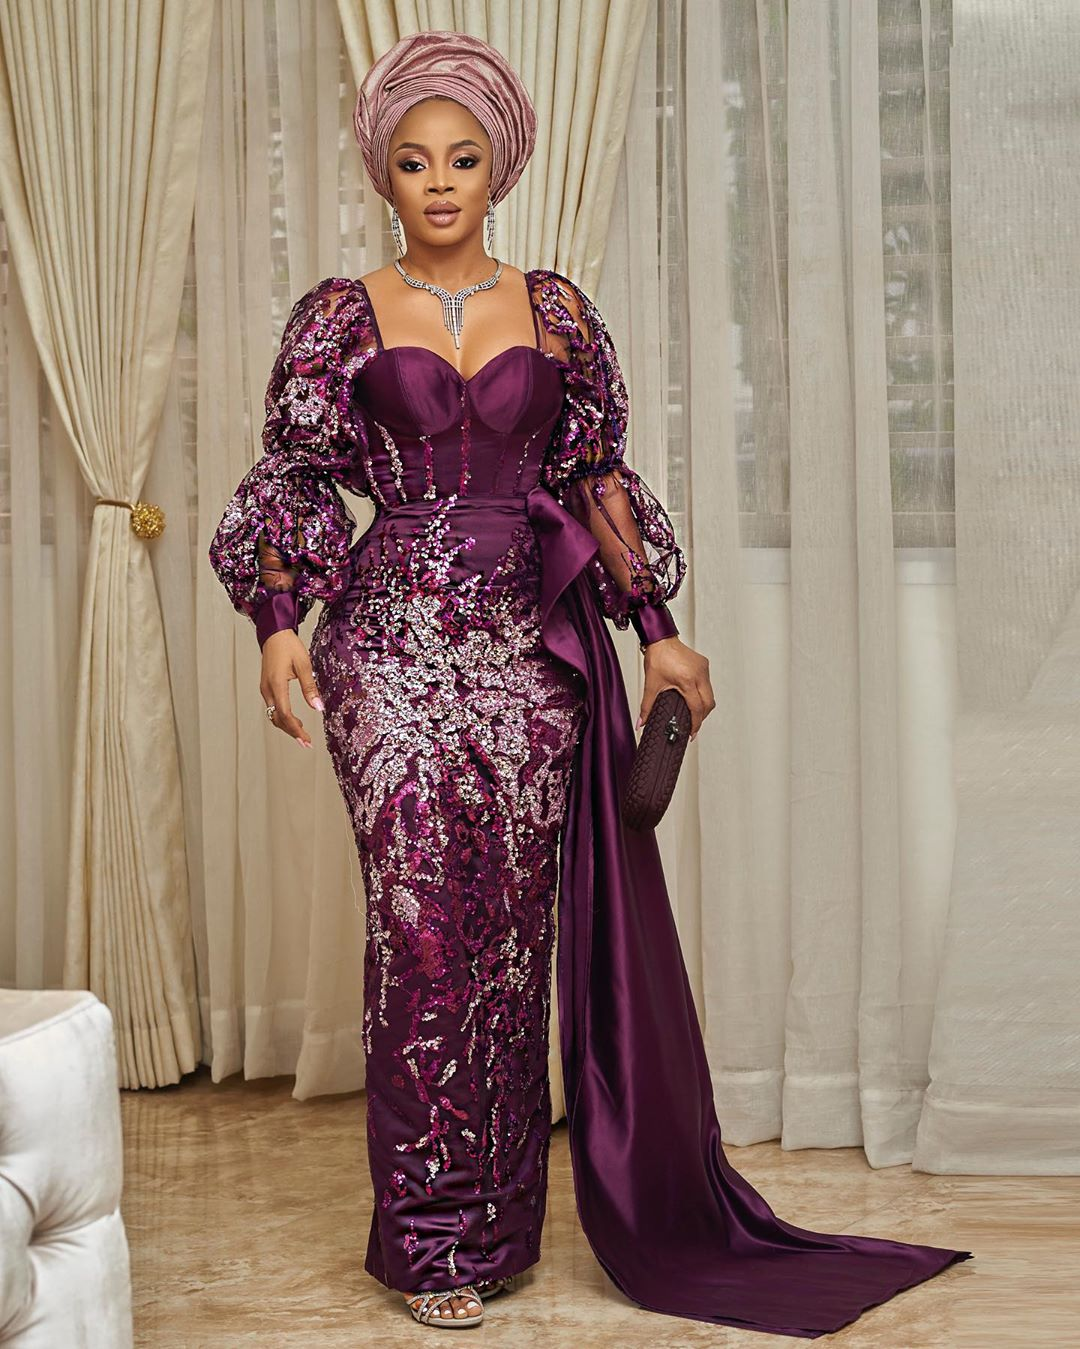 Image result for nigerian celebrities styles at #bae2020